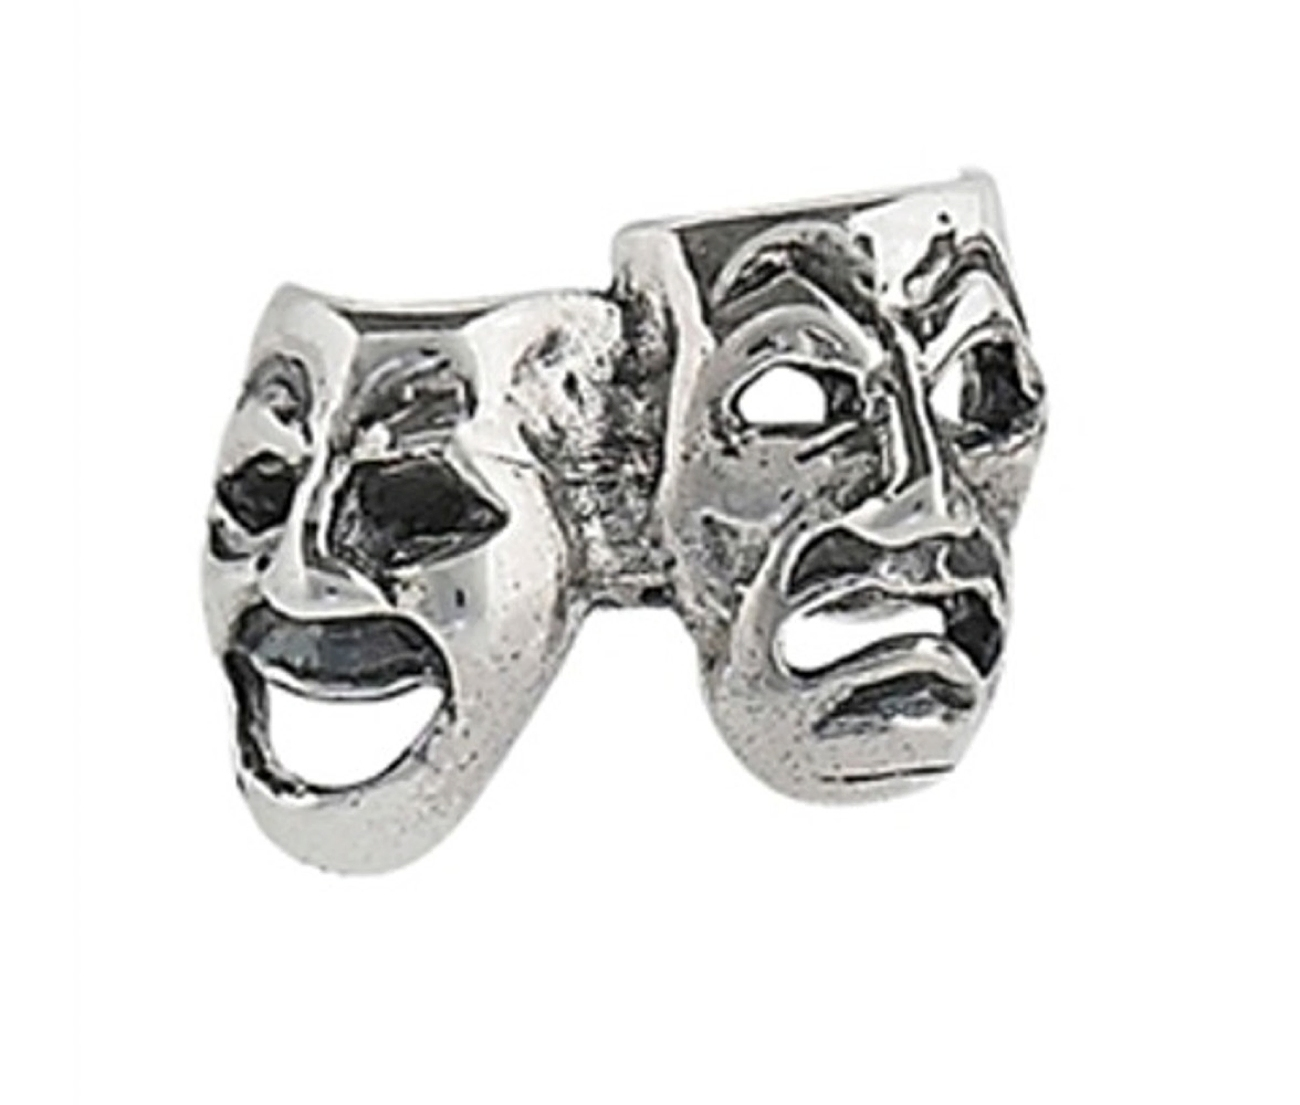 Nonpiercing 6mm Comedy Tragedy Drama Masks Ear Cuff